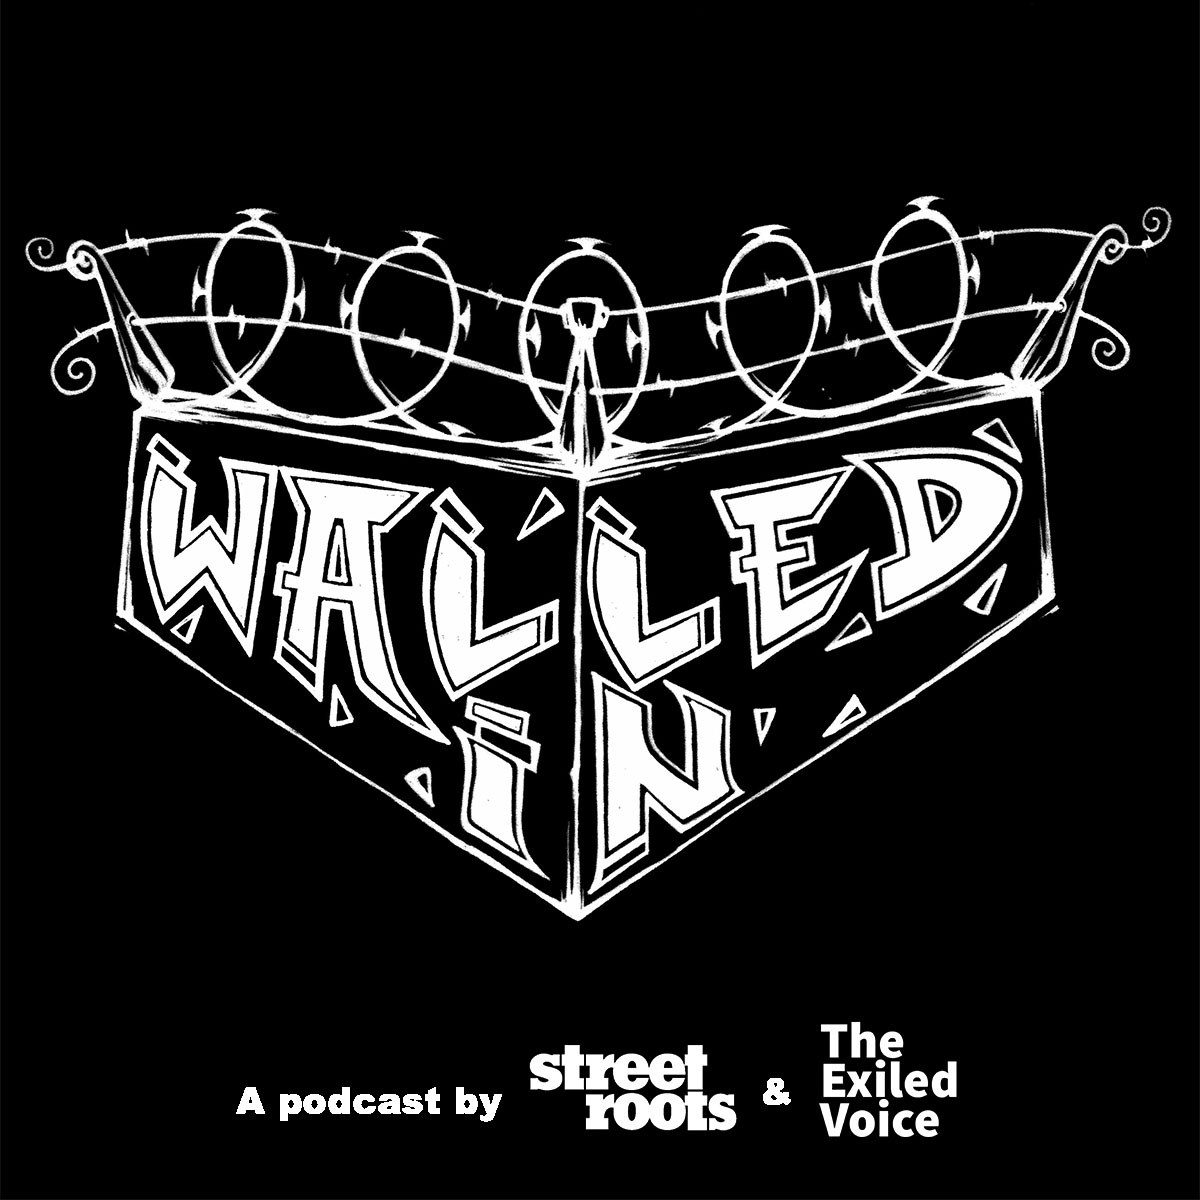 Walled In podcast logo: A co-production of Street Roots and The Exiled Voice